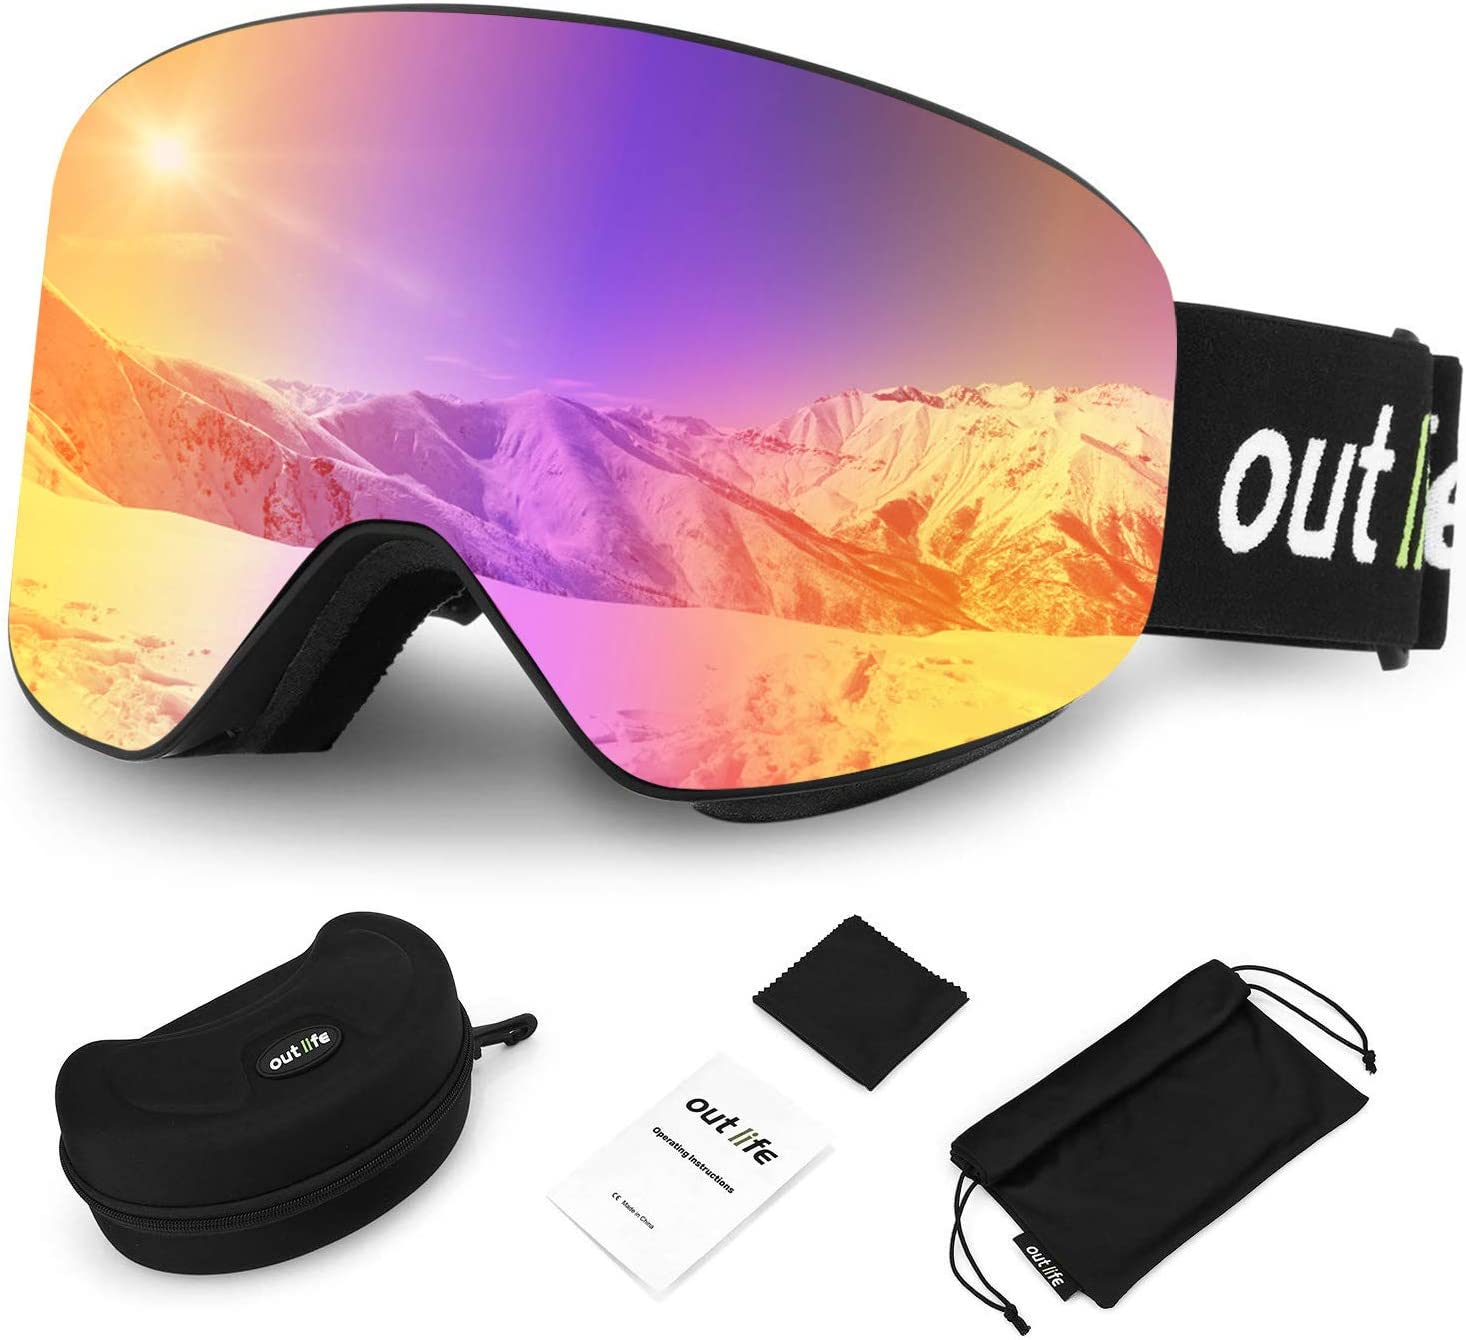 outlife Ski Goggles, Double Lens Ski Snowboard Goggles Anti-Fog UV Protection Anti-Slip Strap with Storage Box for Men Women Youth